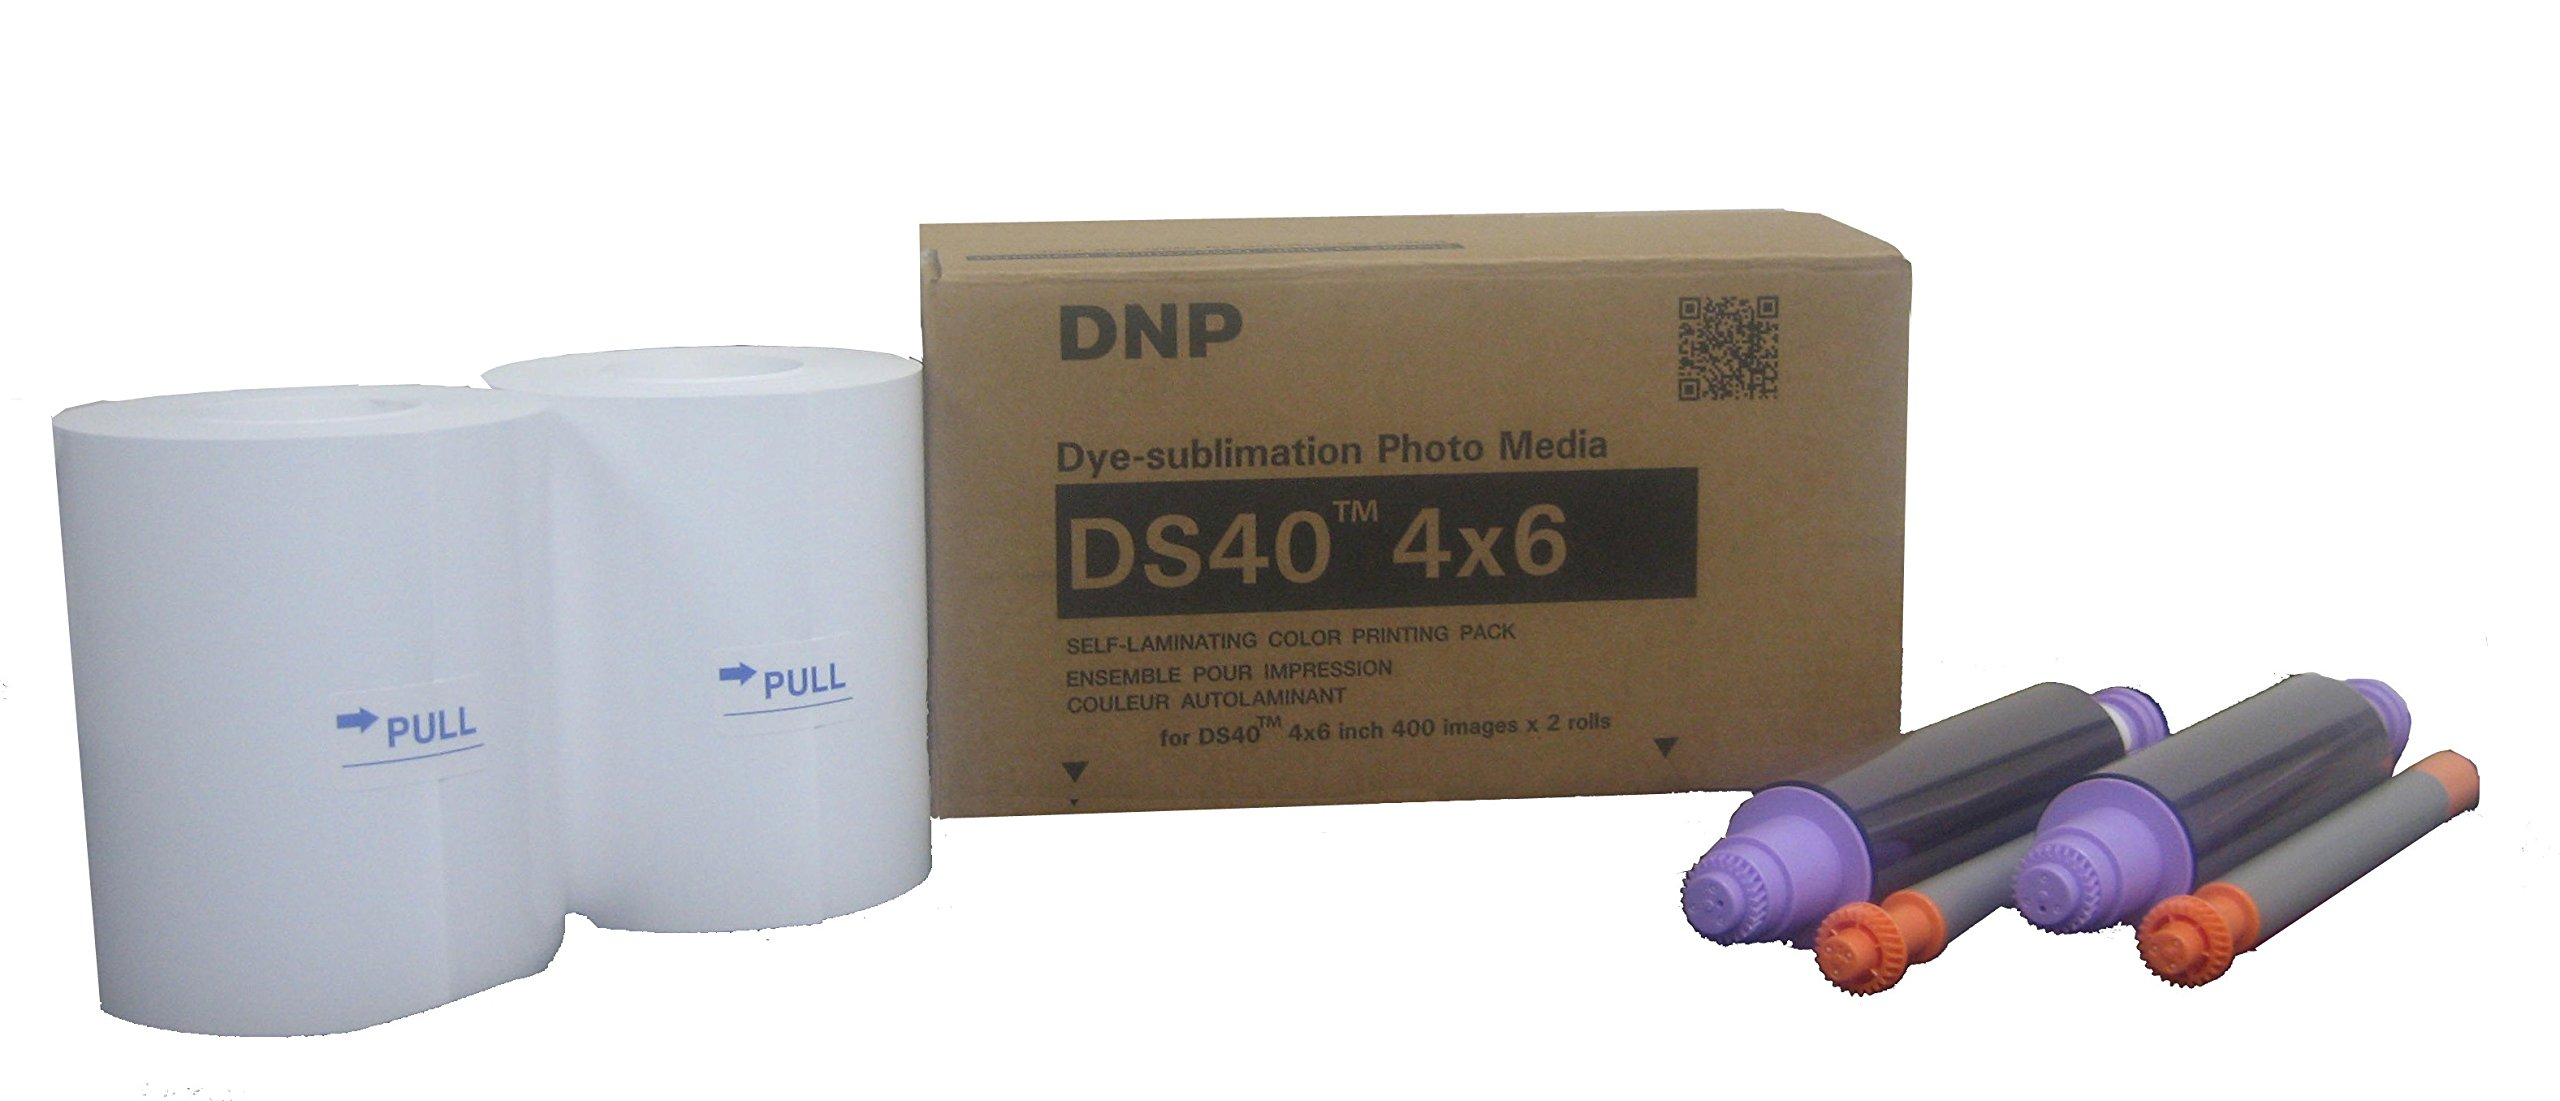 DNP DS40 Dyesub Printer Perforated Media 4x6/800 Glossy Prints (2 Rolls of 400)